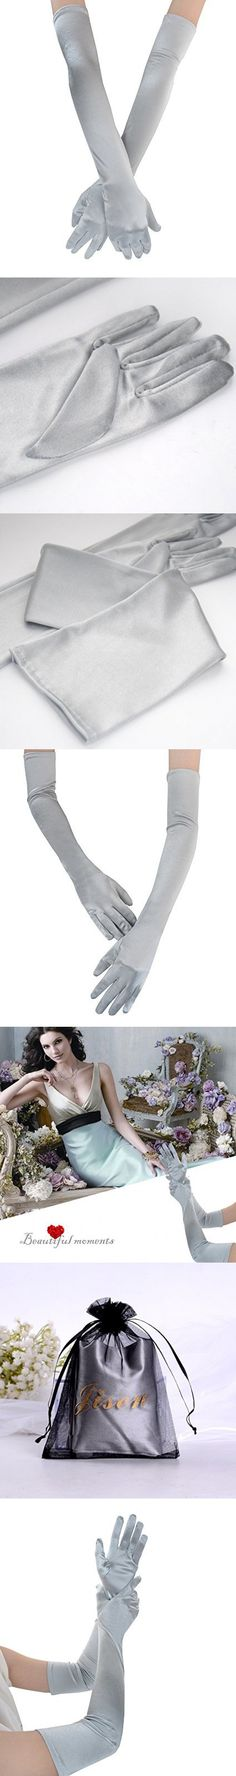 "JISEN Lady Formal Bridal Satin Banquet Party Wedding Gloves Gift Long 22"" (Grey)"